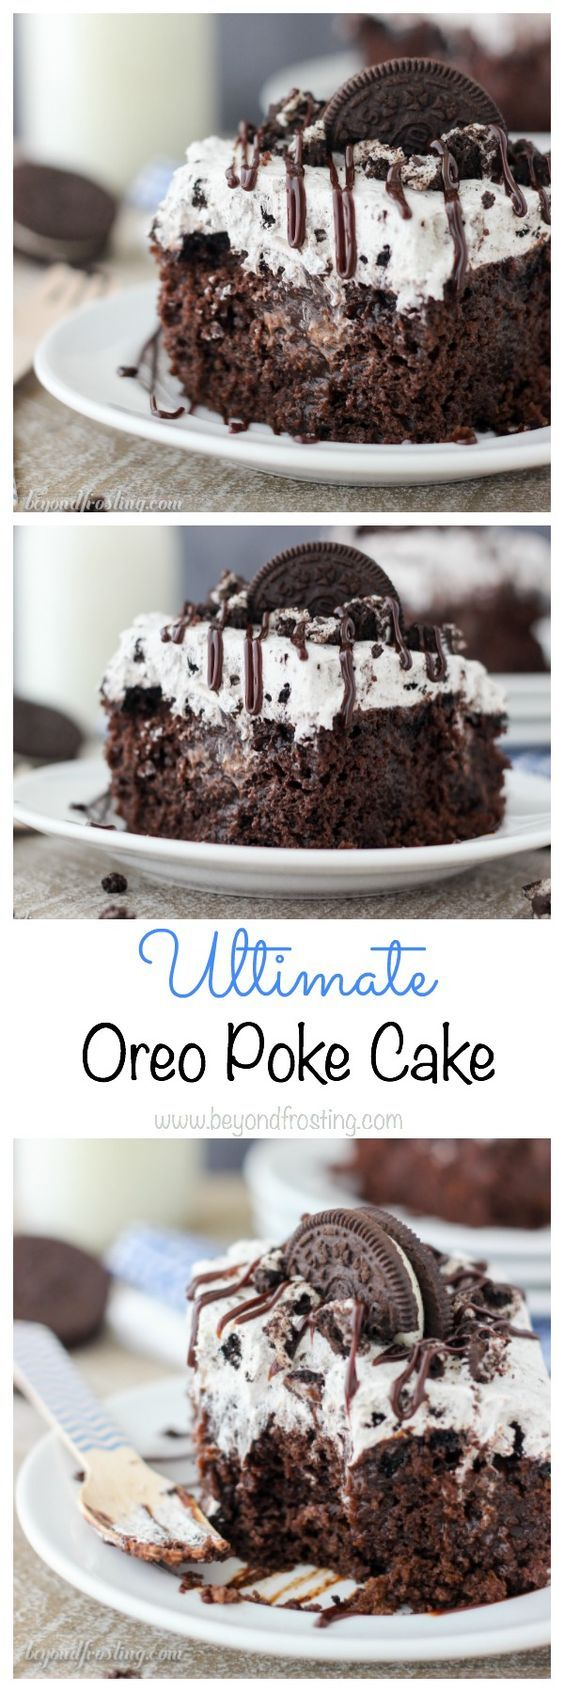 Ultimate Oreo Poke Cake